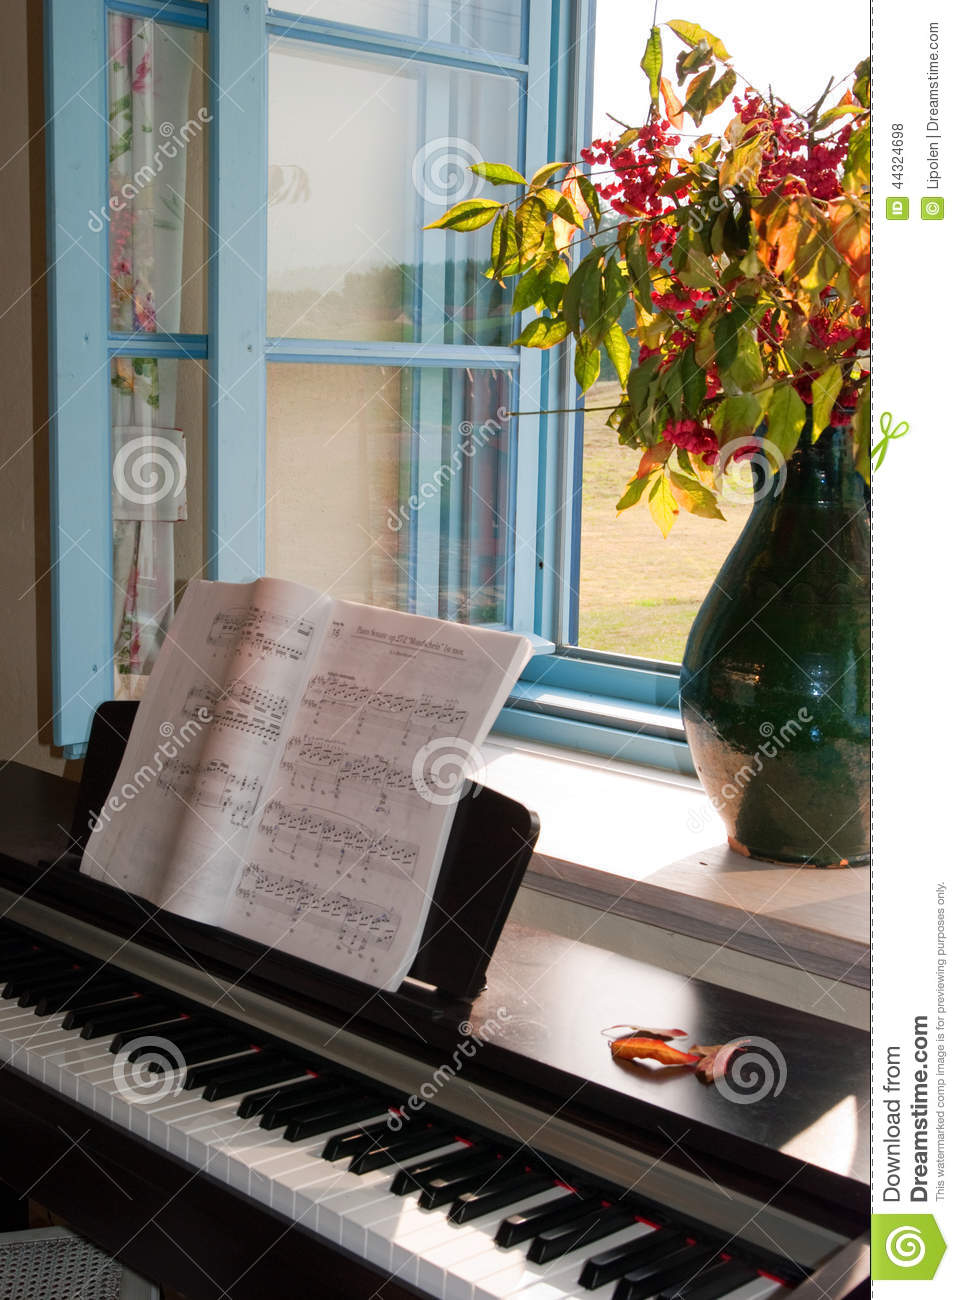 Piano la fen tre ouverte photo stock image 44324698 for La fenetre ouverte